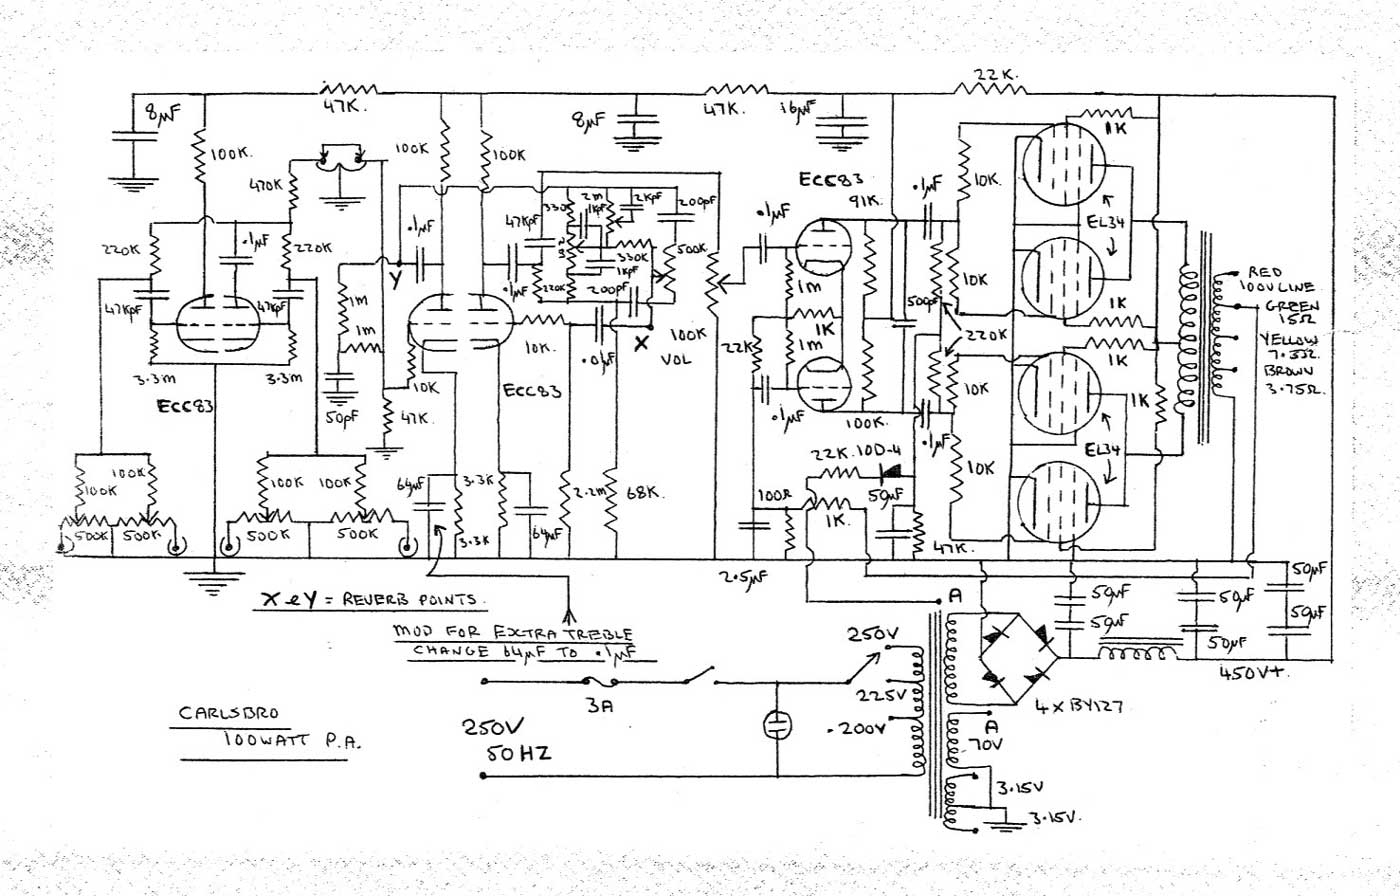 Wiring Diagram Telecaster 4 Way Switch